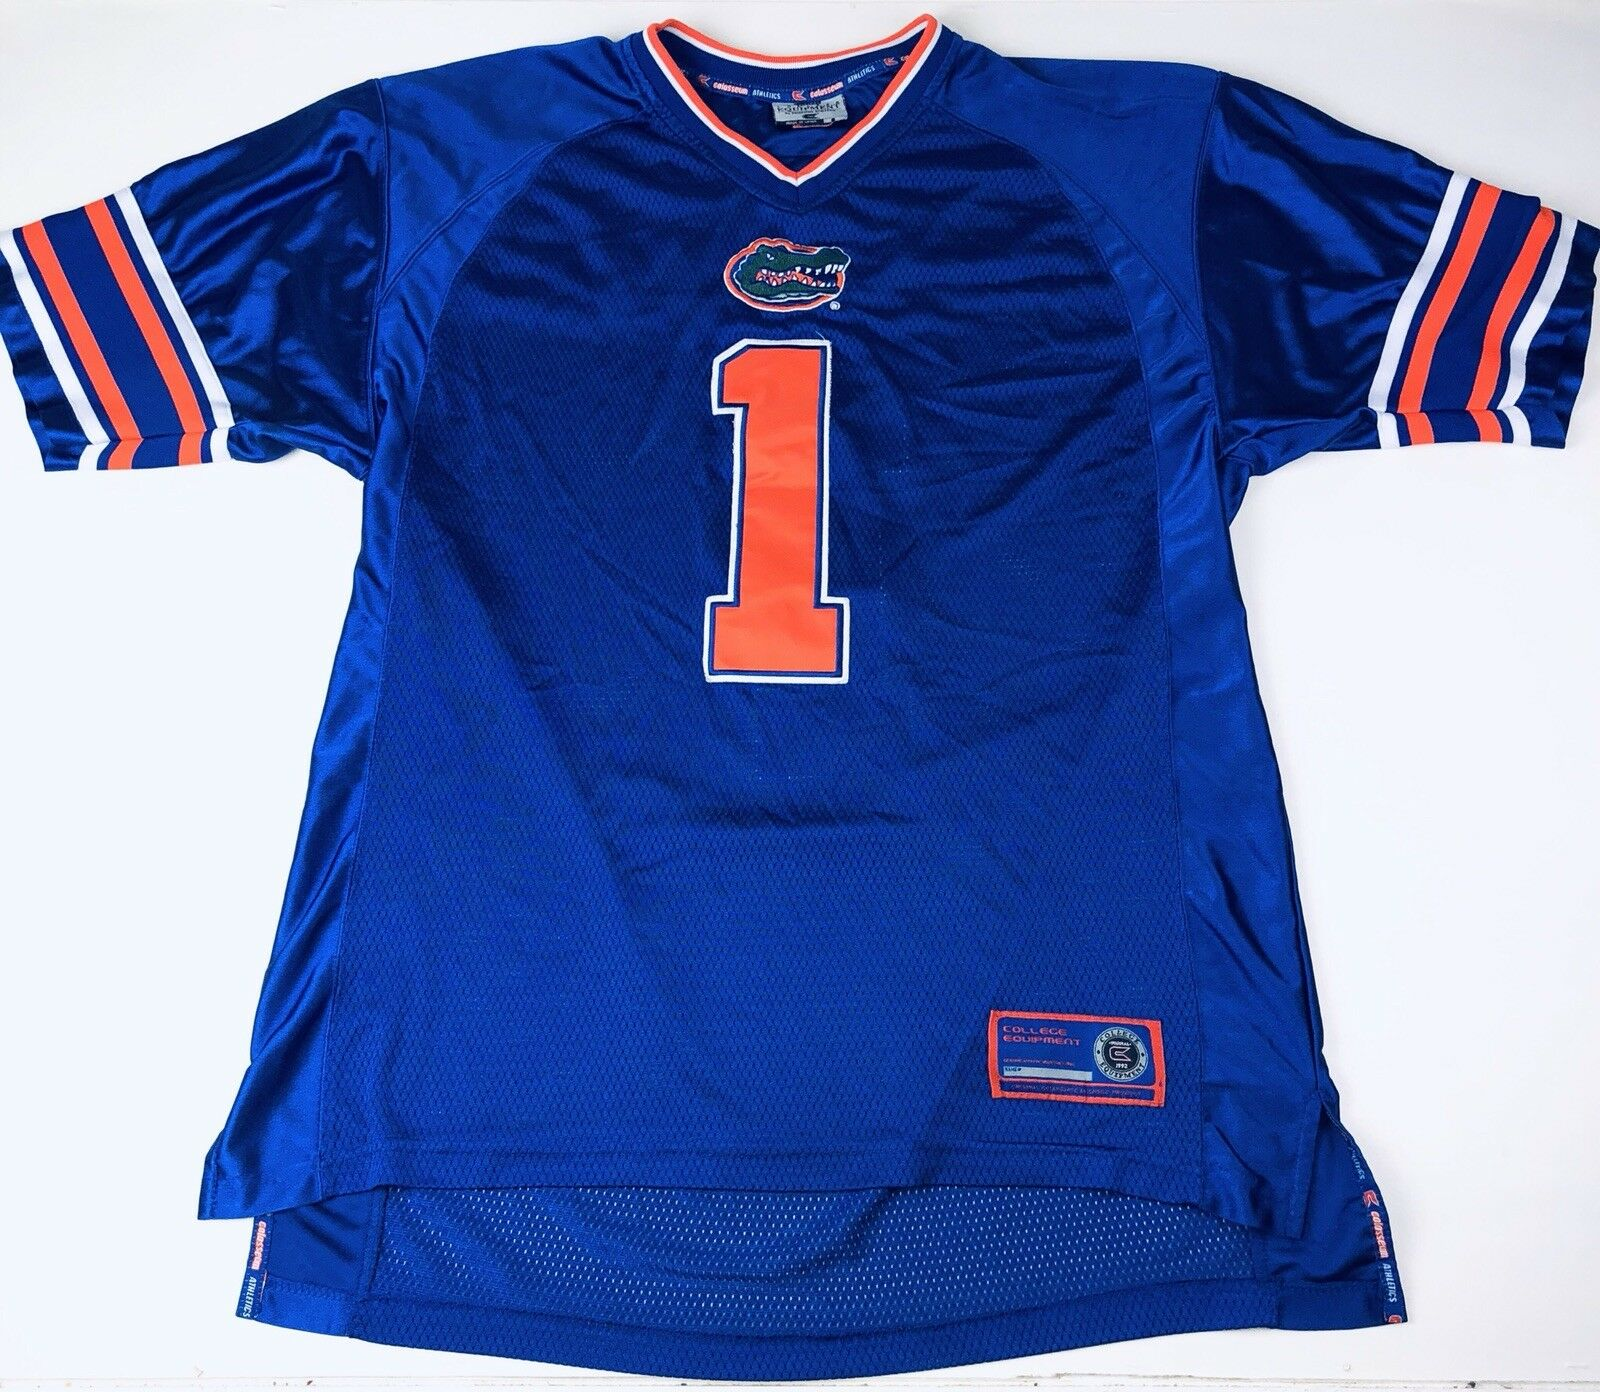 Colosseum Florida Gators Football Jersey Vintage 1992 Size Large